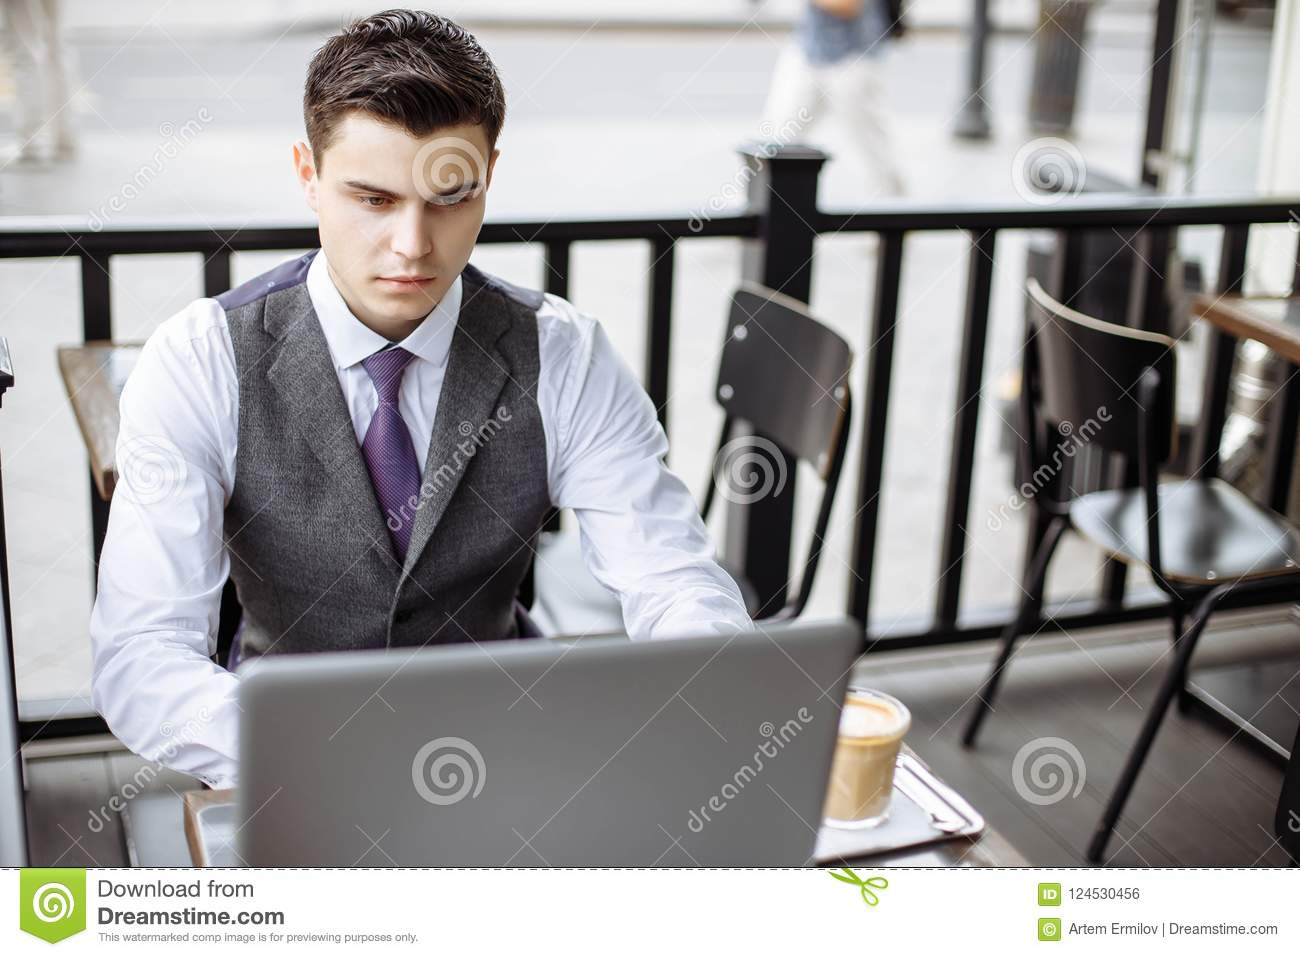 Business, technology and people concept - young man with a laptop and coffee cup at city street cafe